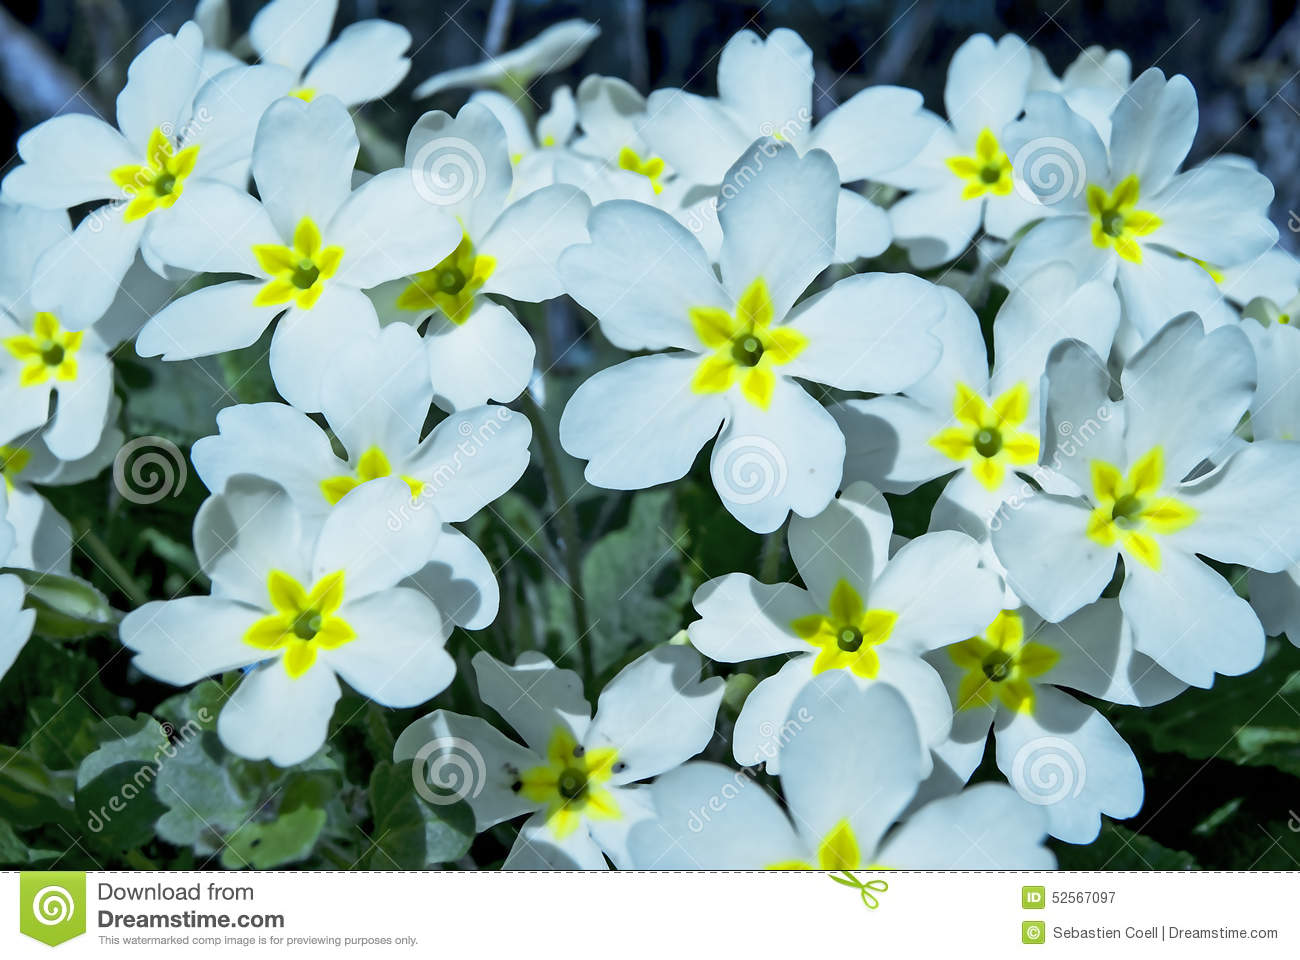 White Flowres With A Yellow Center Stock Image Image Of Stems